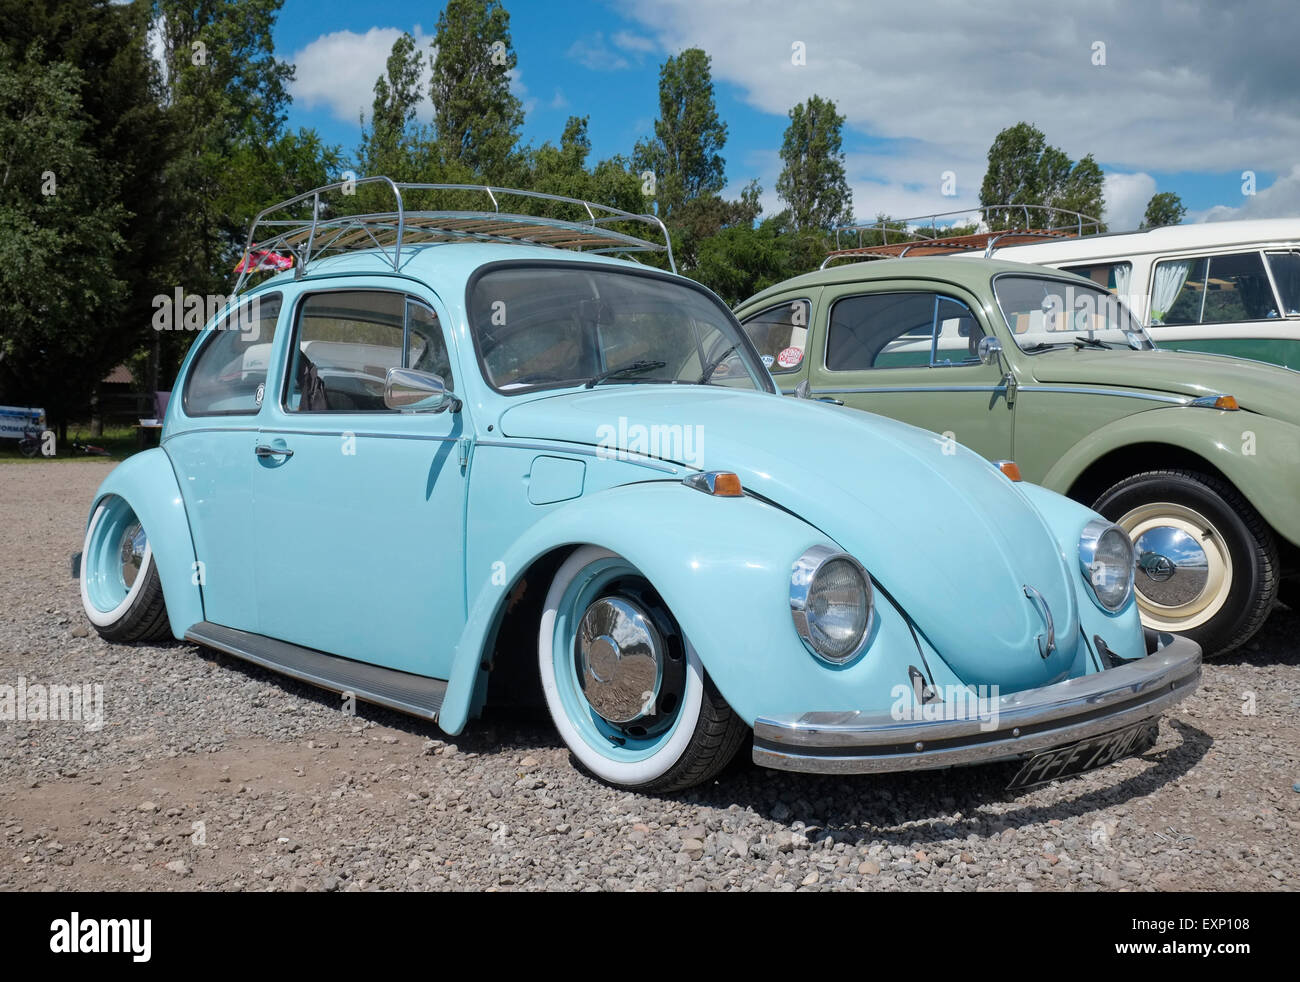 Classic Vw Beetle With Lowered Suspension Bus Stop Over